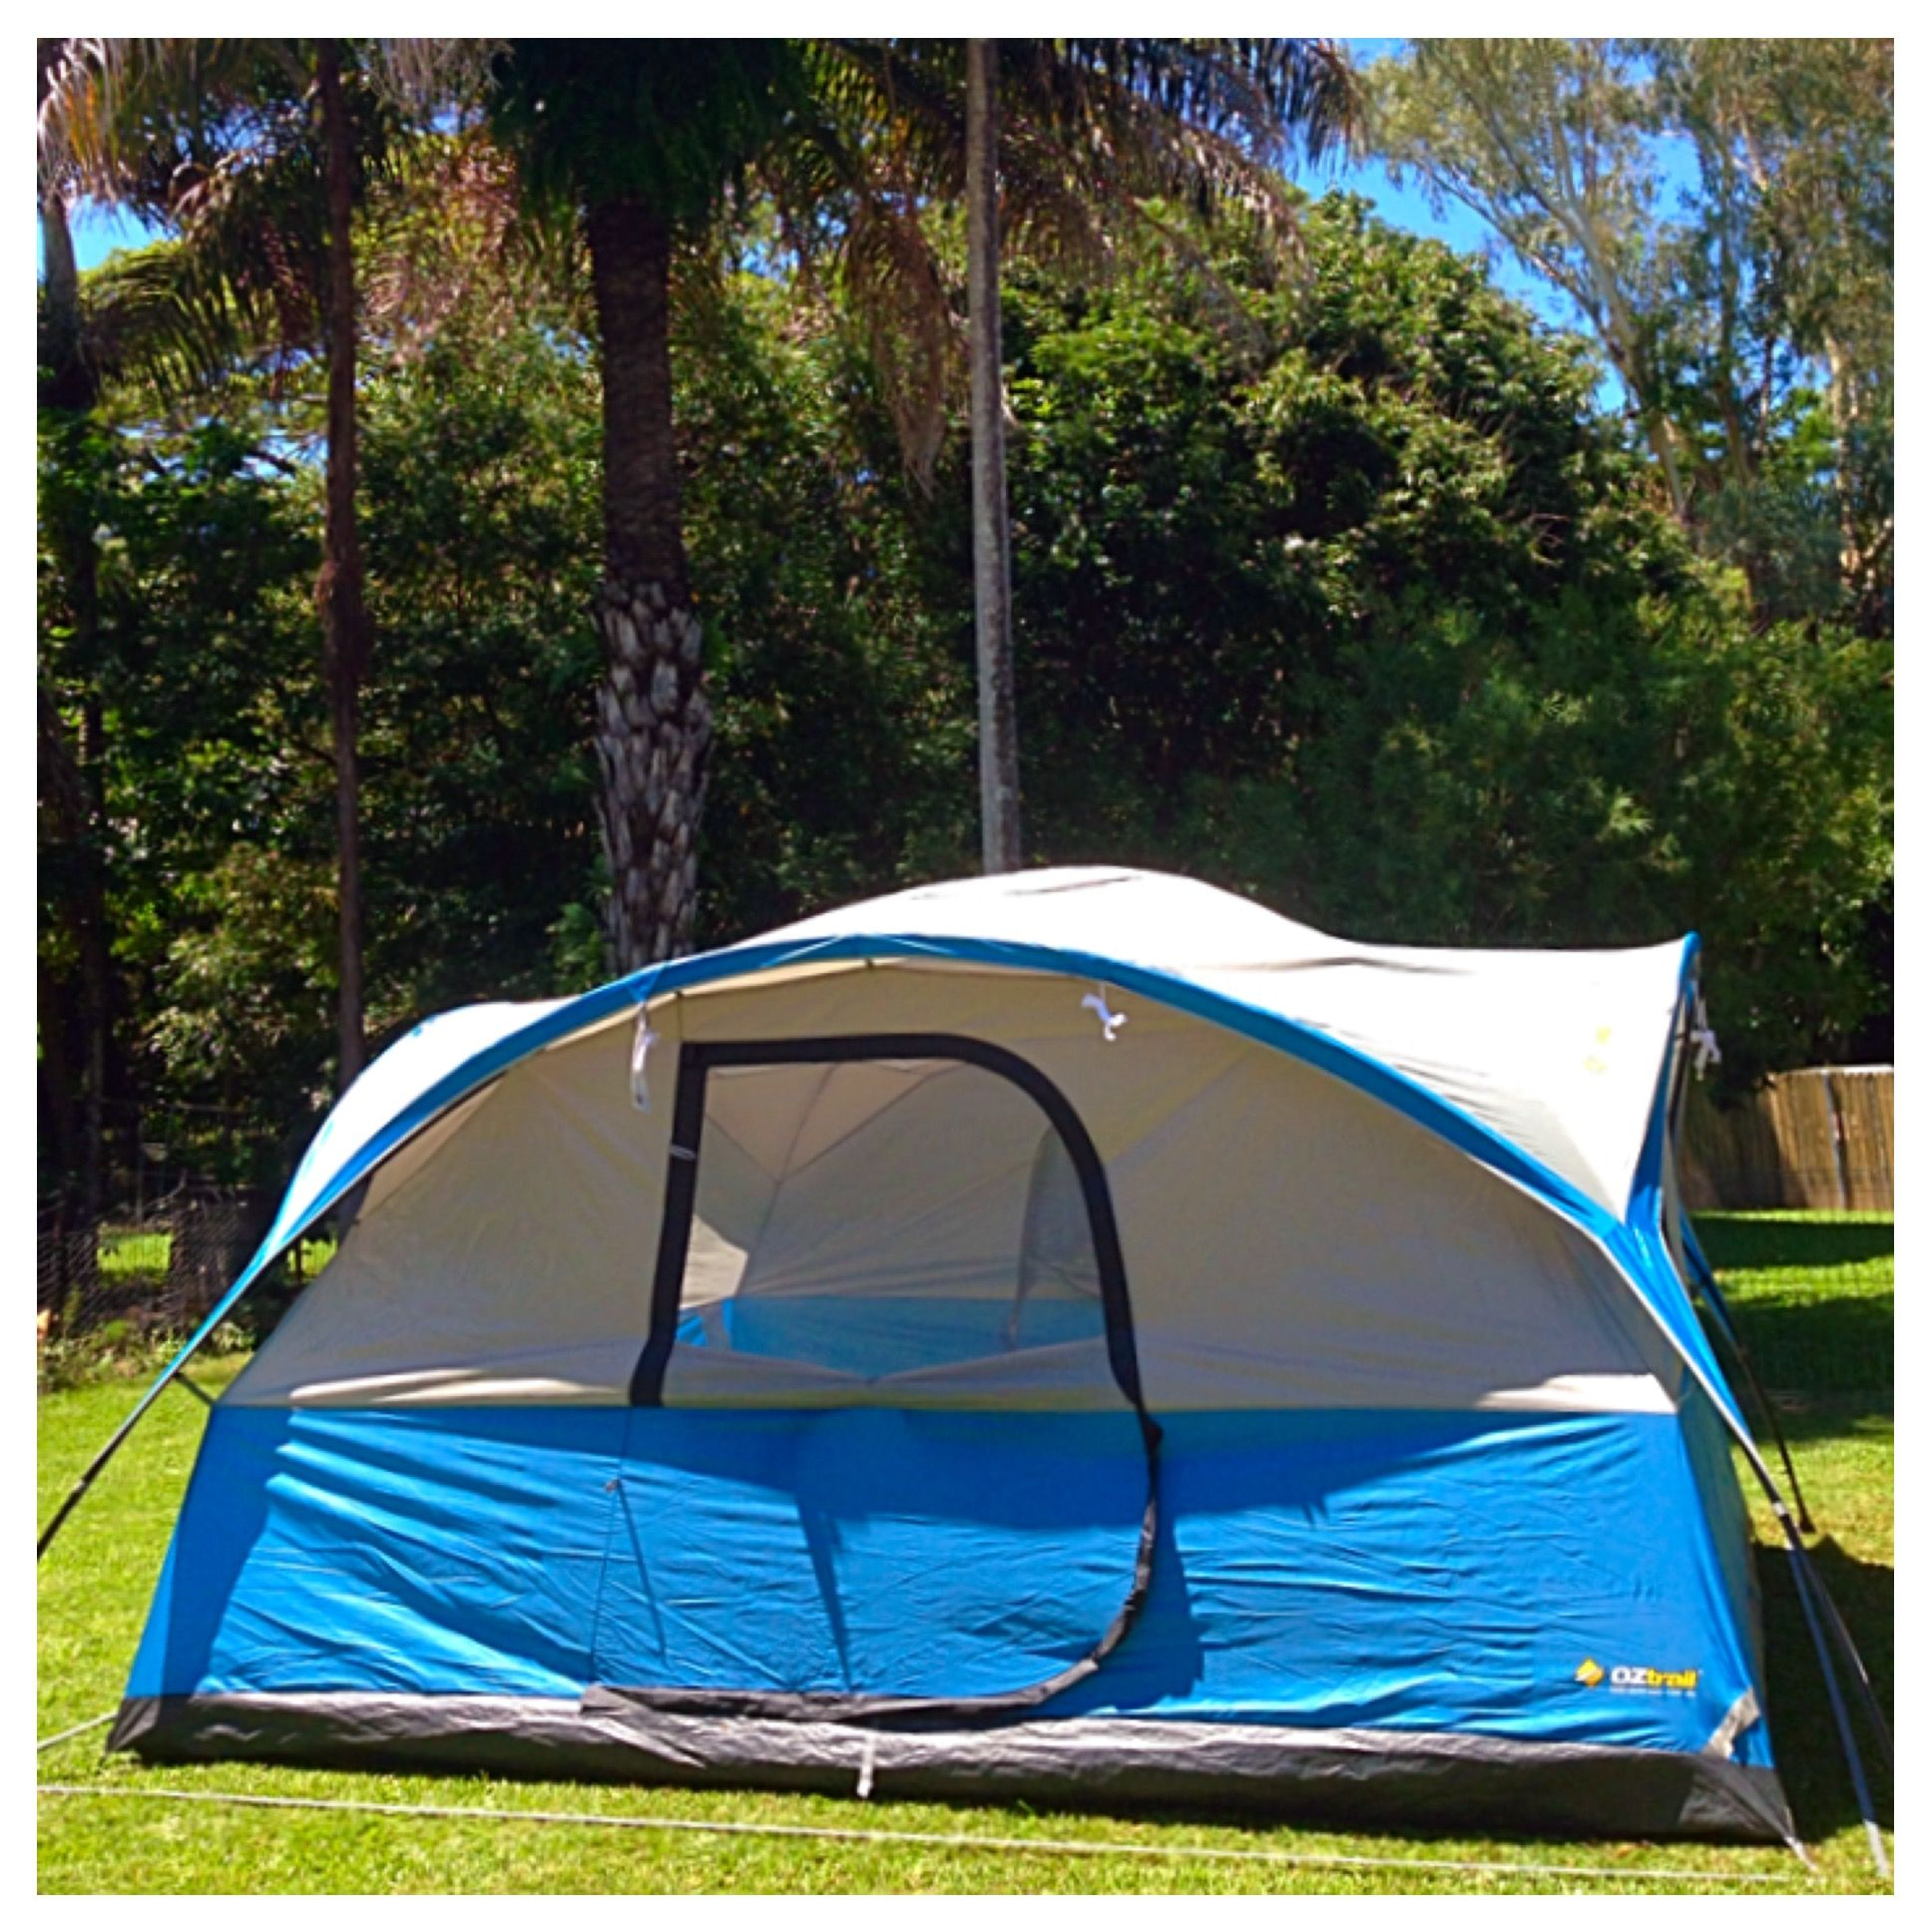 5 Tests for the OZtrail Festival 15 Shade Dome - A C&ing Gazebo Review & 5 Tests for the OZtrail Festival 15 Shade Dome - A Camping Gazebo ...